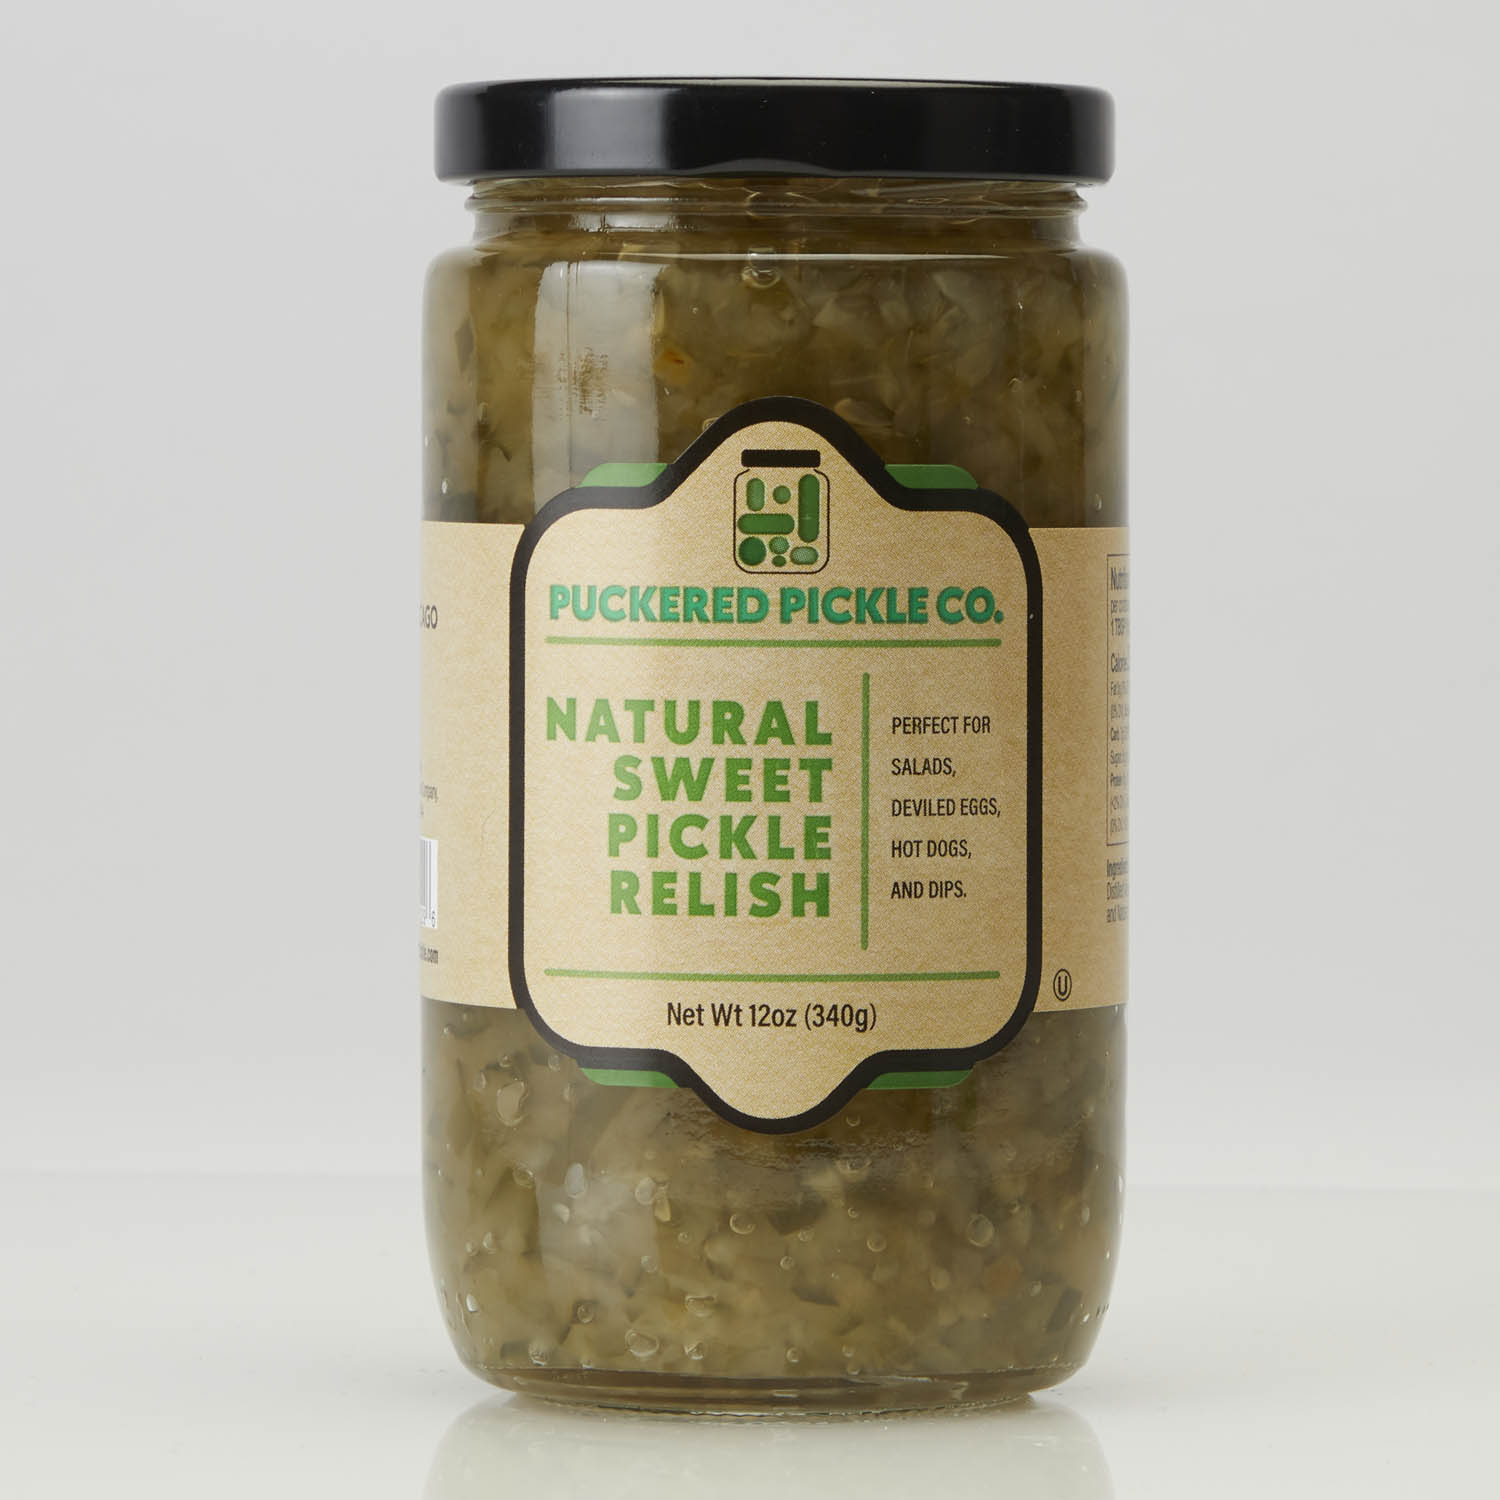 Sweet Pickle Relish 2 Pack Puckered Pickle Company